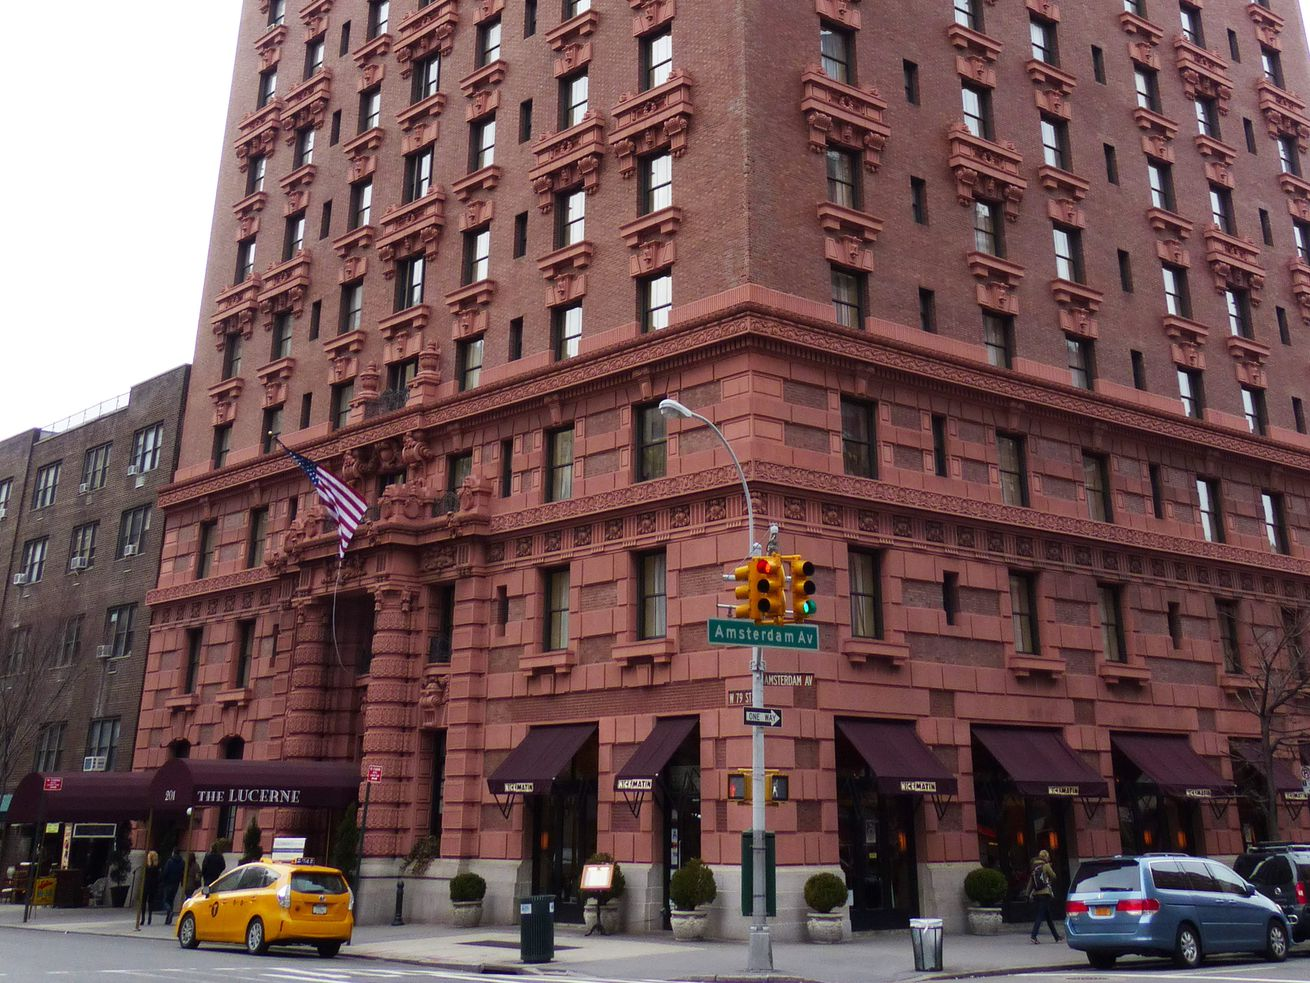 The Lucerne Hotel, a terra cotta building on the corner of Amsterdam Avenue and West 79th Street on Manhattan's Upper West Side. Homeless NYC residents have been housed in the hotel as part of the city's coronavirus response.